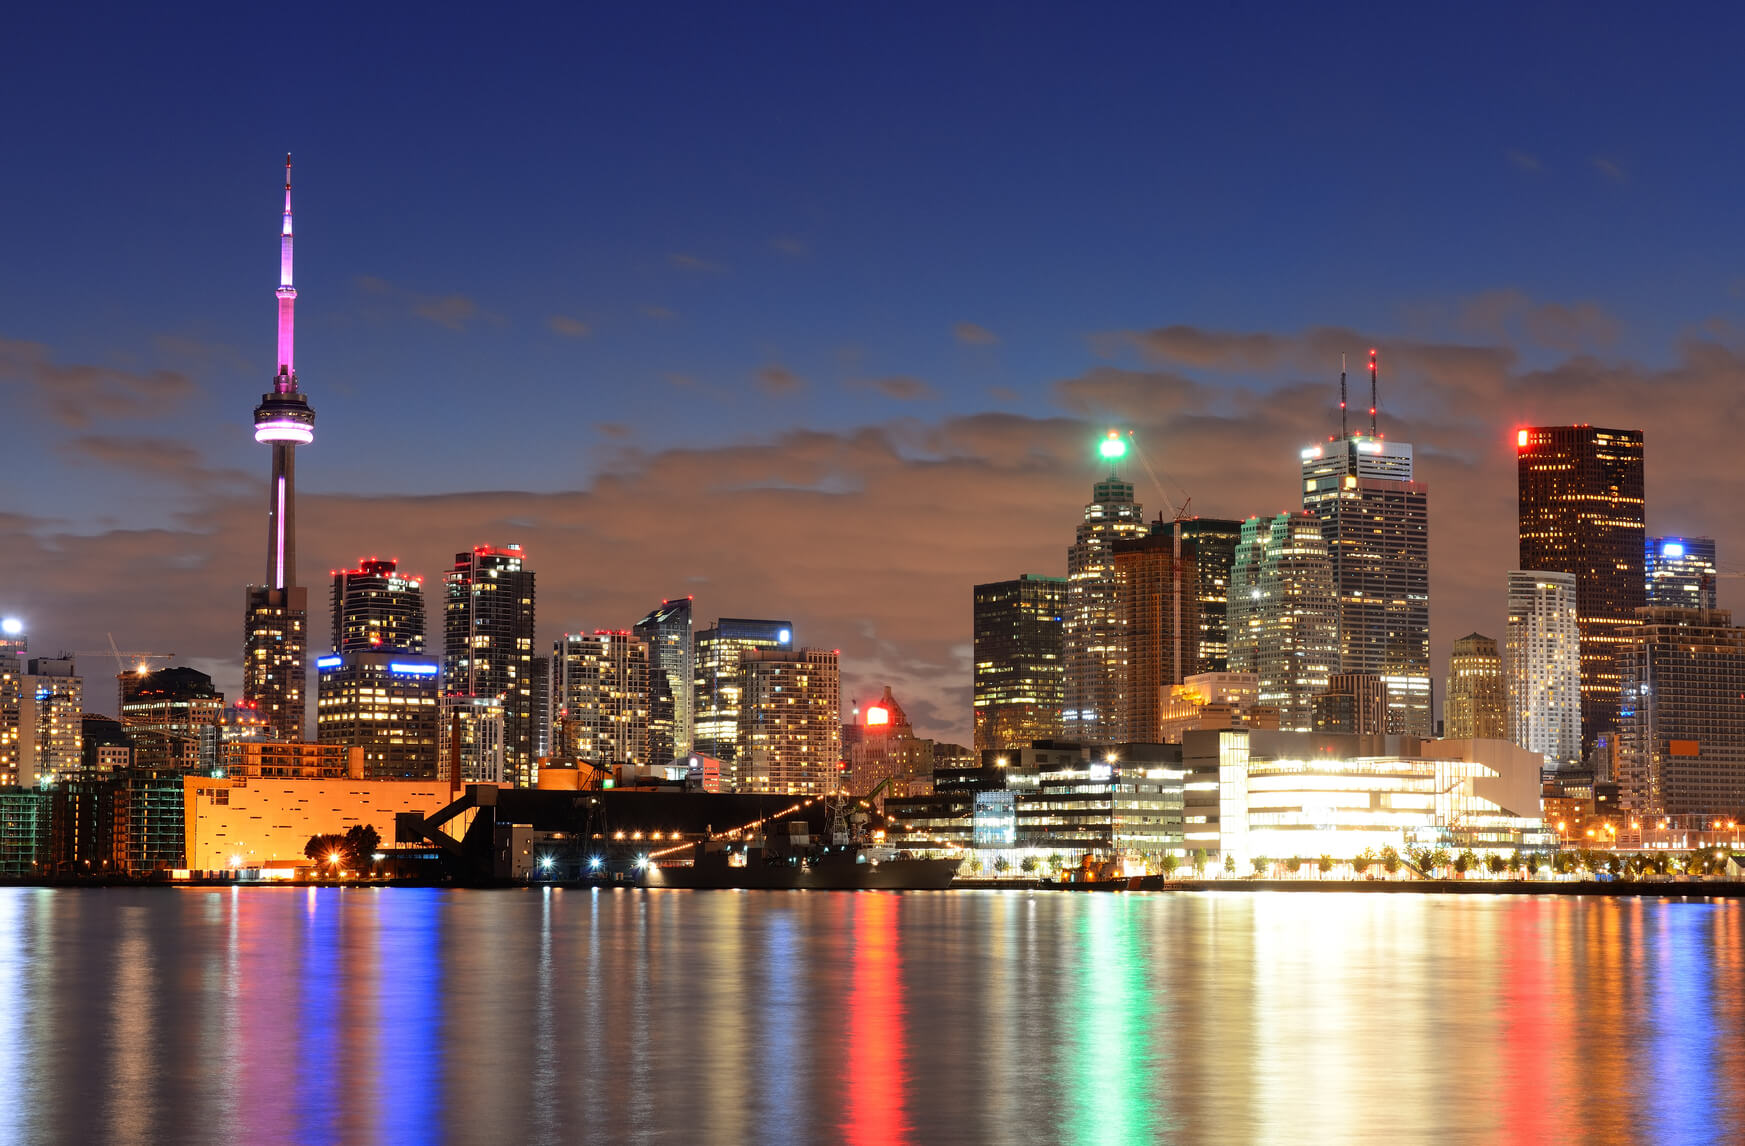 Non-stop from Miami to Toronto, Canada for only $158 roundtrip